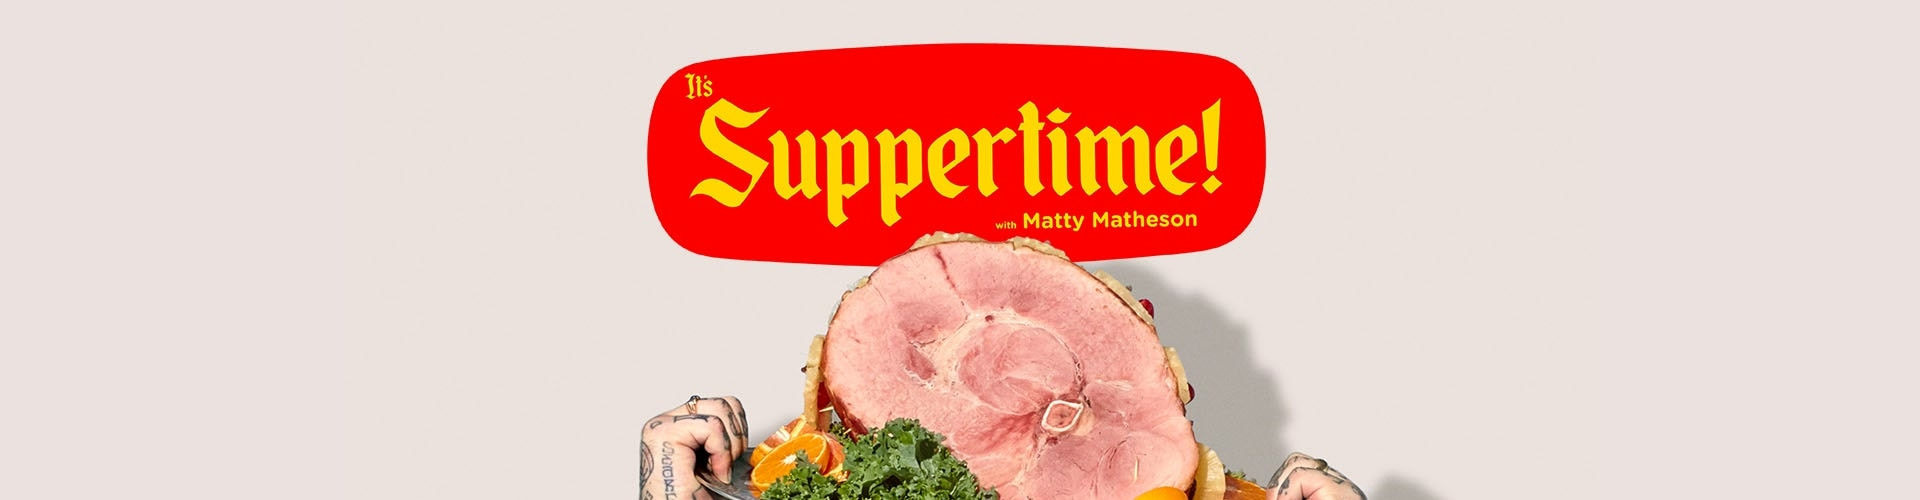 Watch It's Suppertime! Online